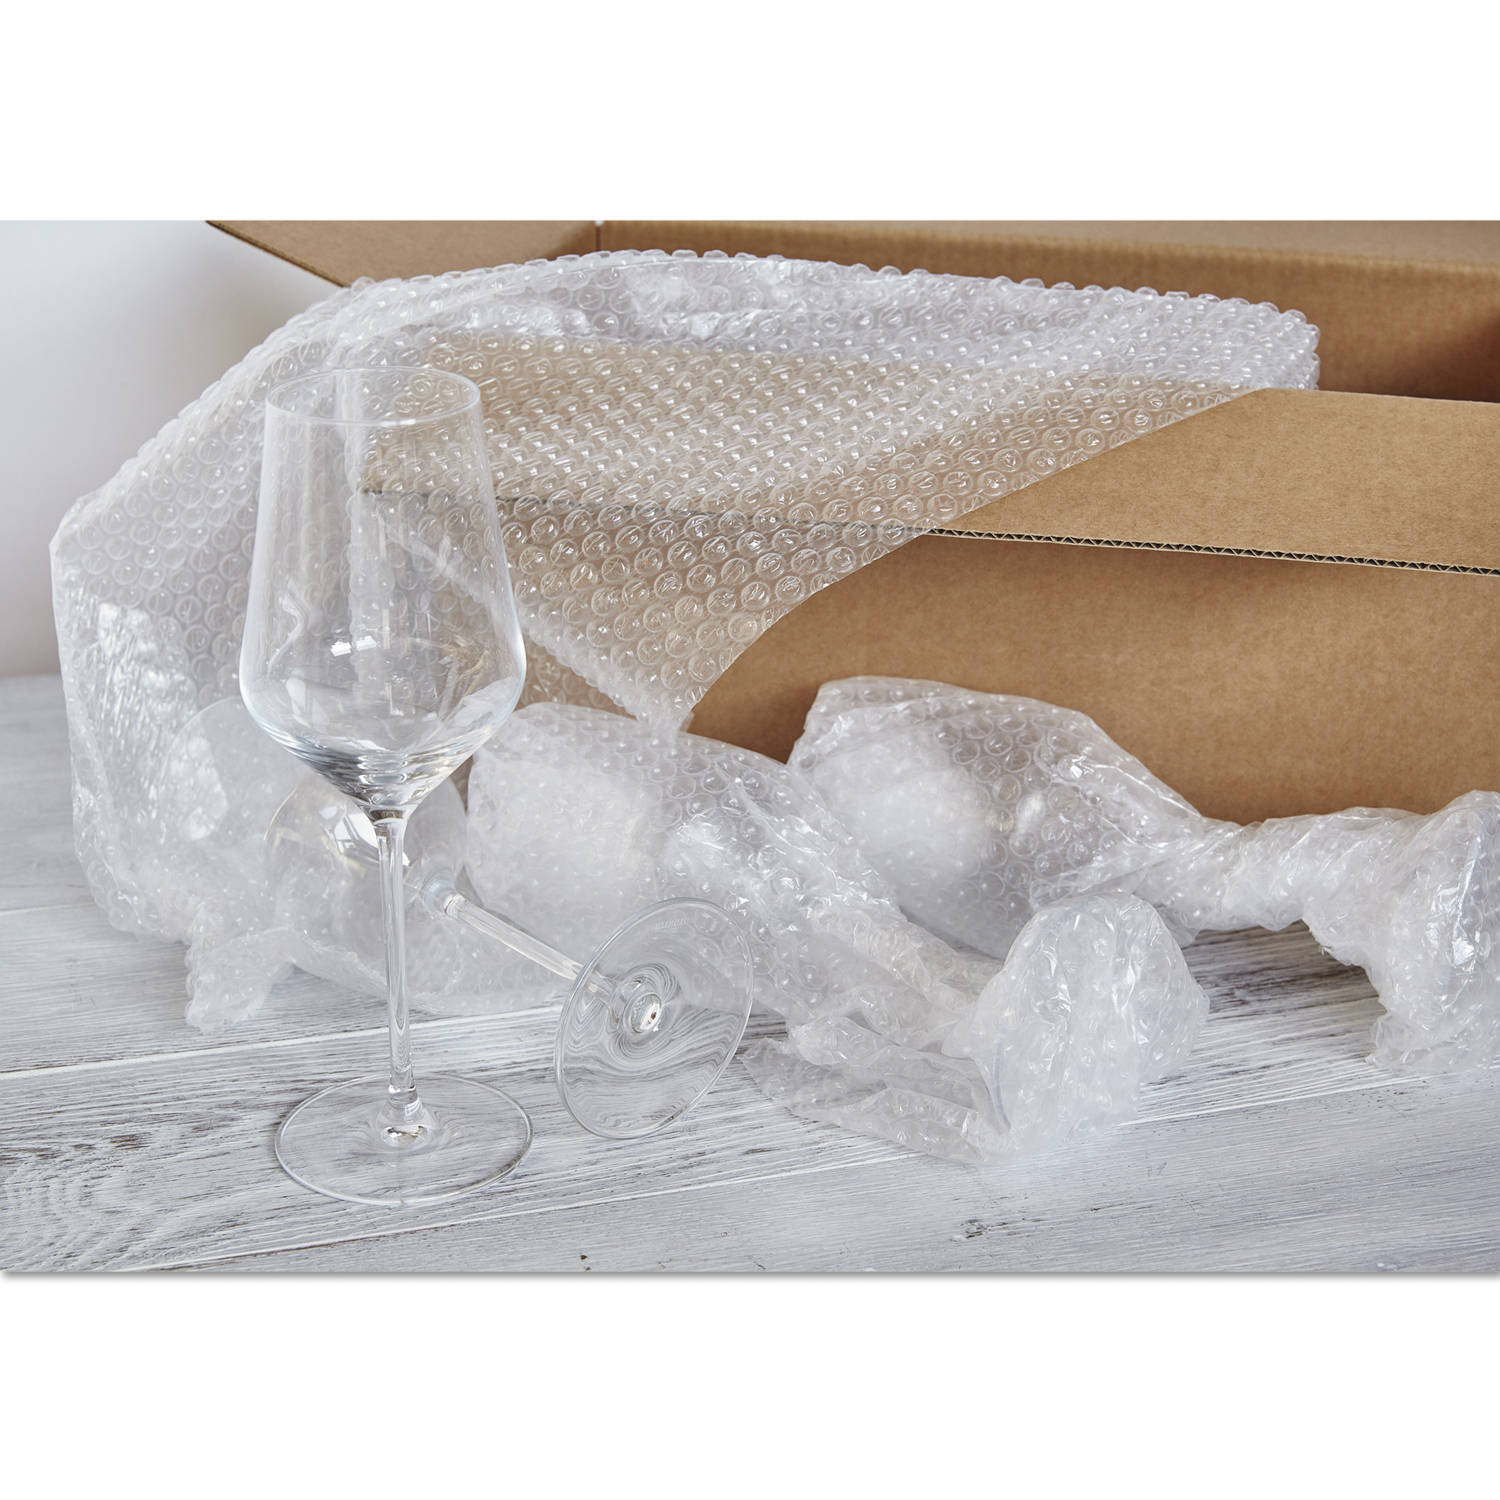 "American Bubble Boy Bubble Wrap Official Sealed Air Bubble Wrap - 350 Feet X 3/16"" X 12"" - Perforated Every 12"" - American Bubble Boy"